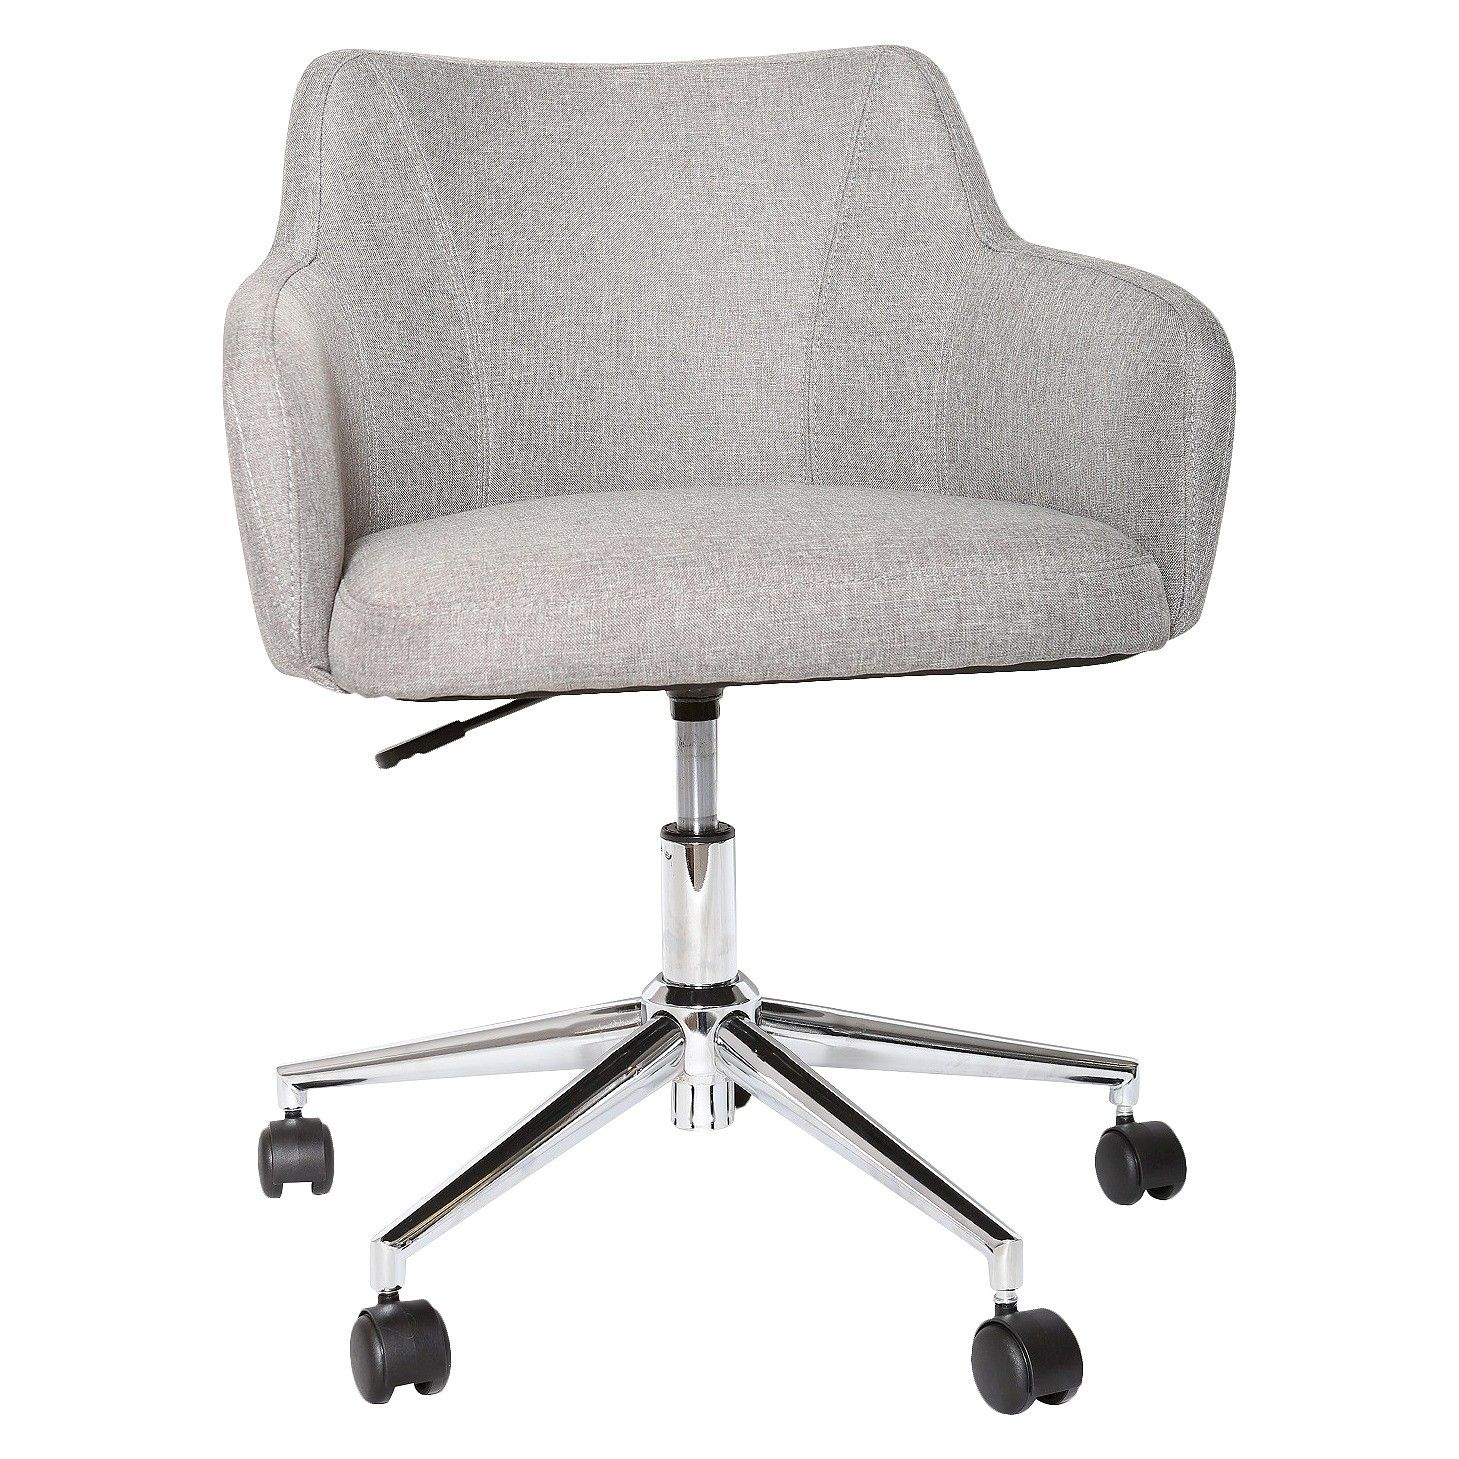 Target Office Chairs Room Essentials Office Chair Upholstered Grey Linen Target